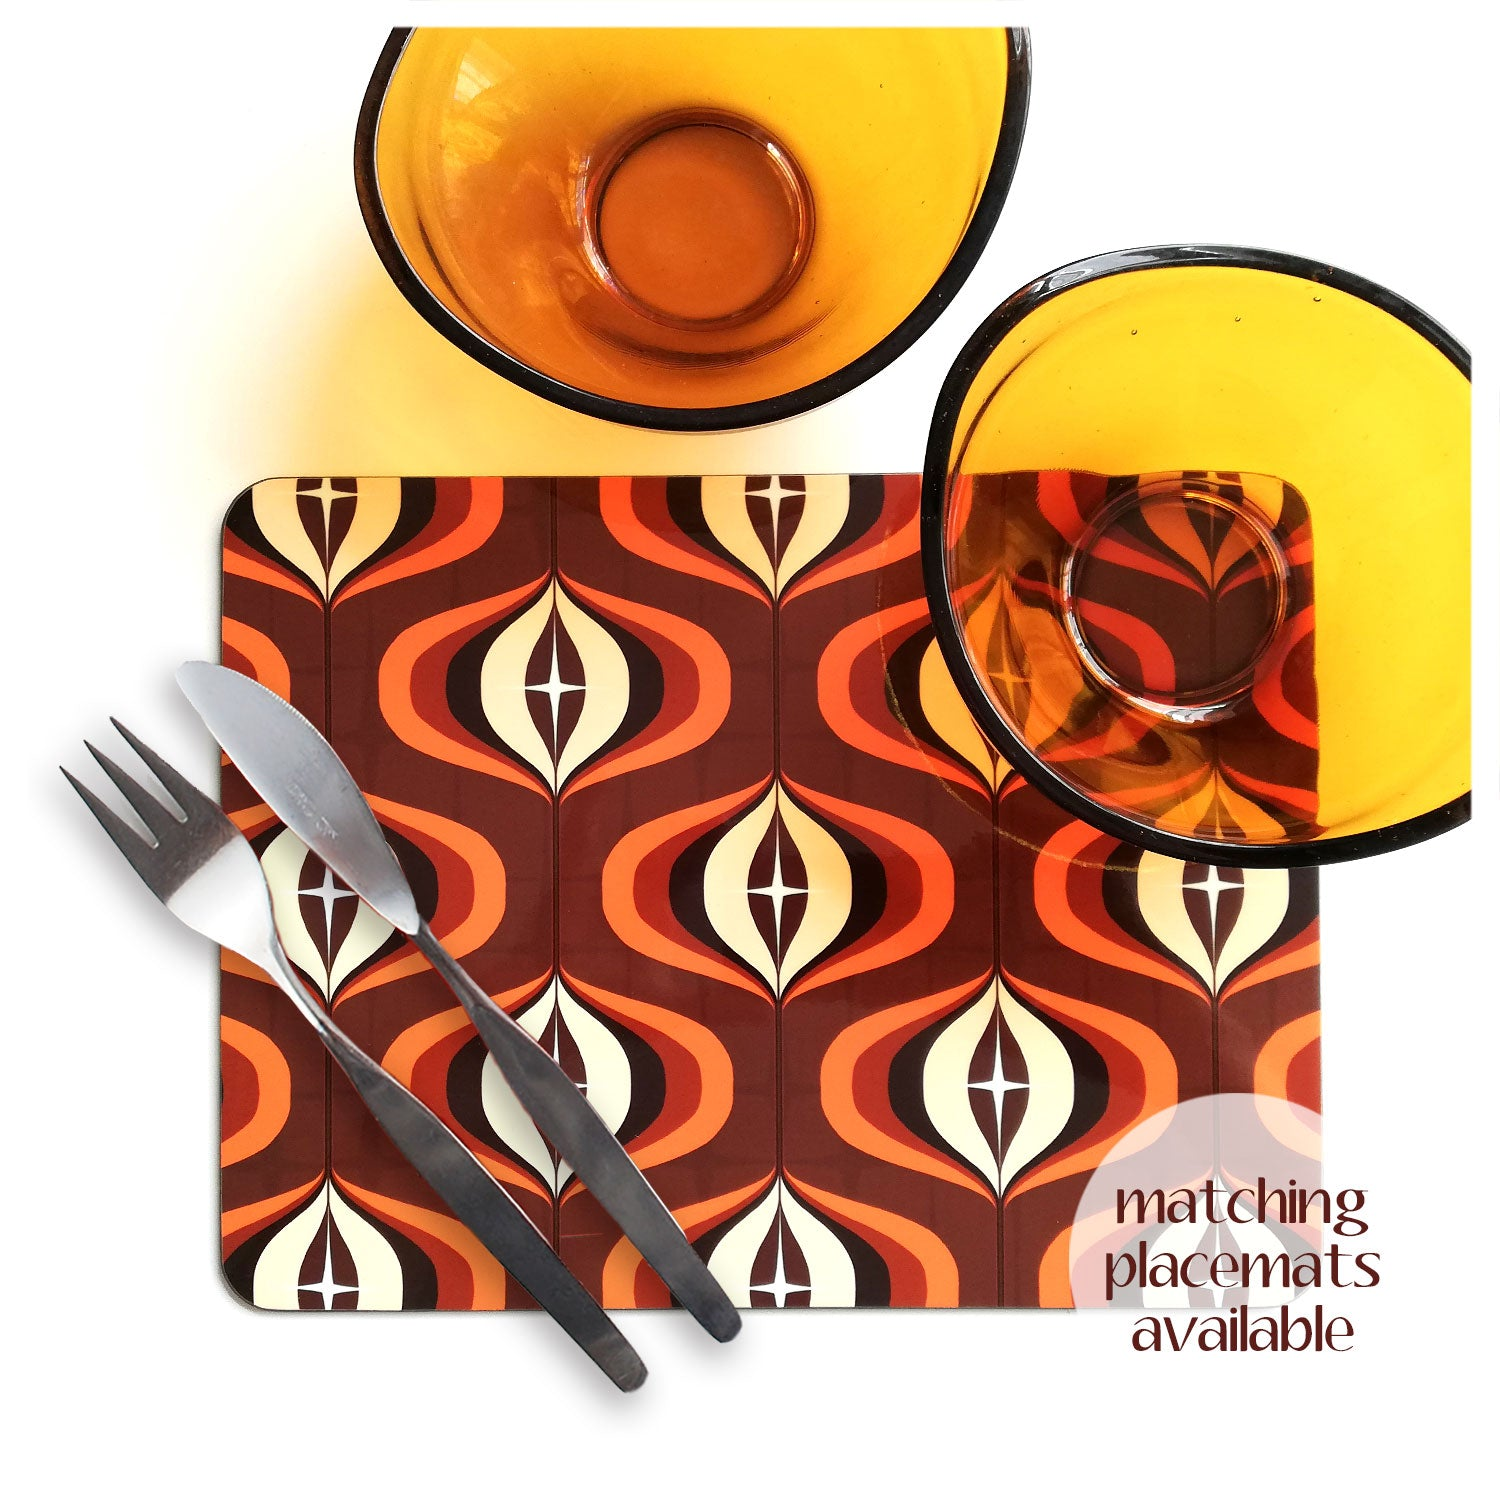 1970s Op Art Placemat in Brown with vintage bowls | The Inkabilly Emporium